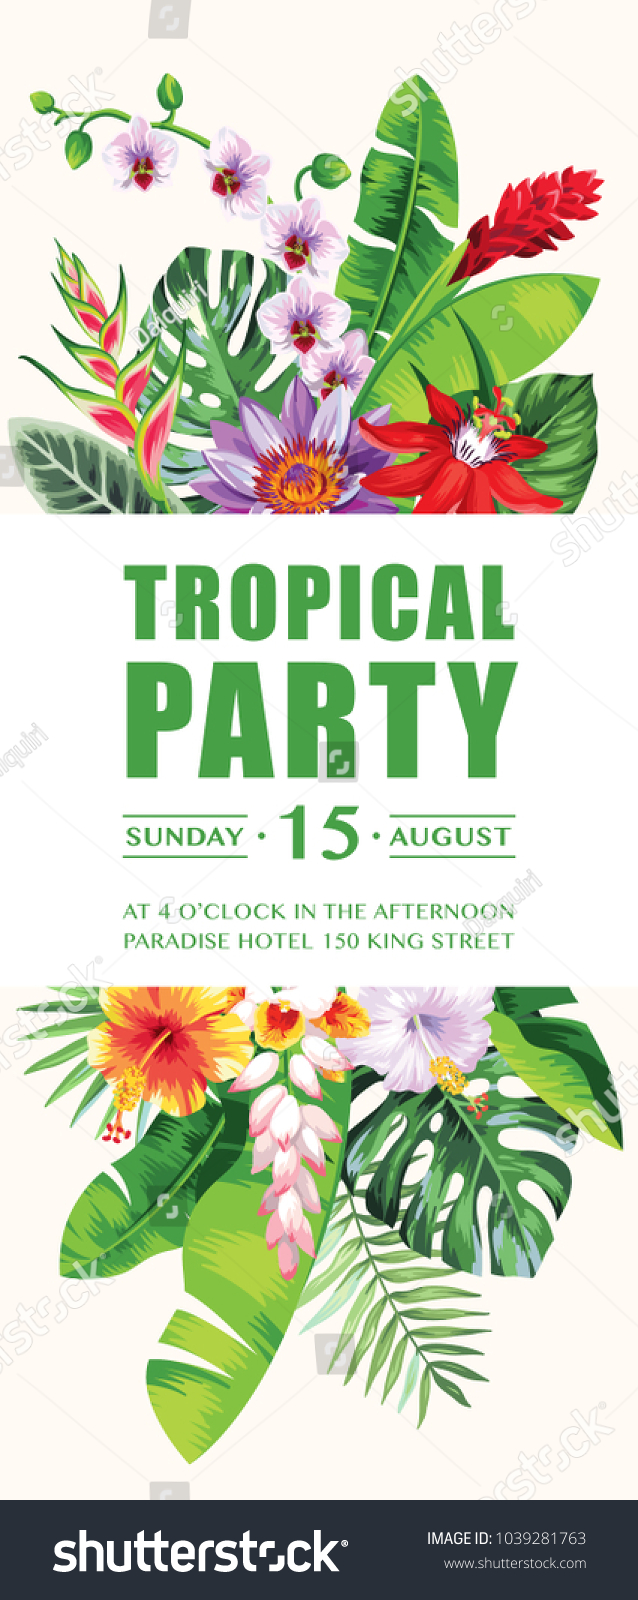 Tropical hawaiian party invitation palm leaves stock vector tropical hawaiian party invitation with palm leaves and exotic flowers template design vector illustration izmirmasajfo